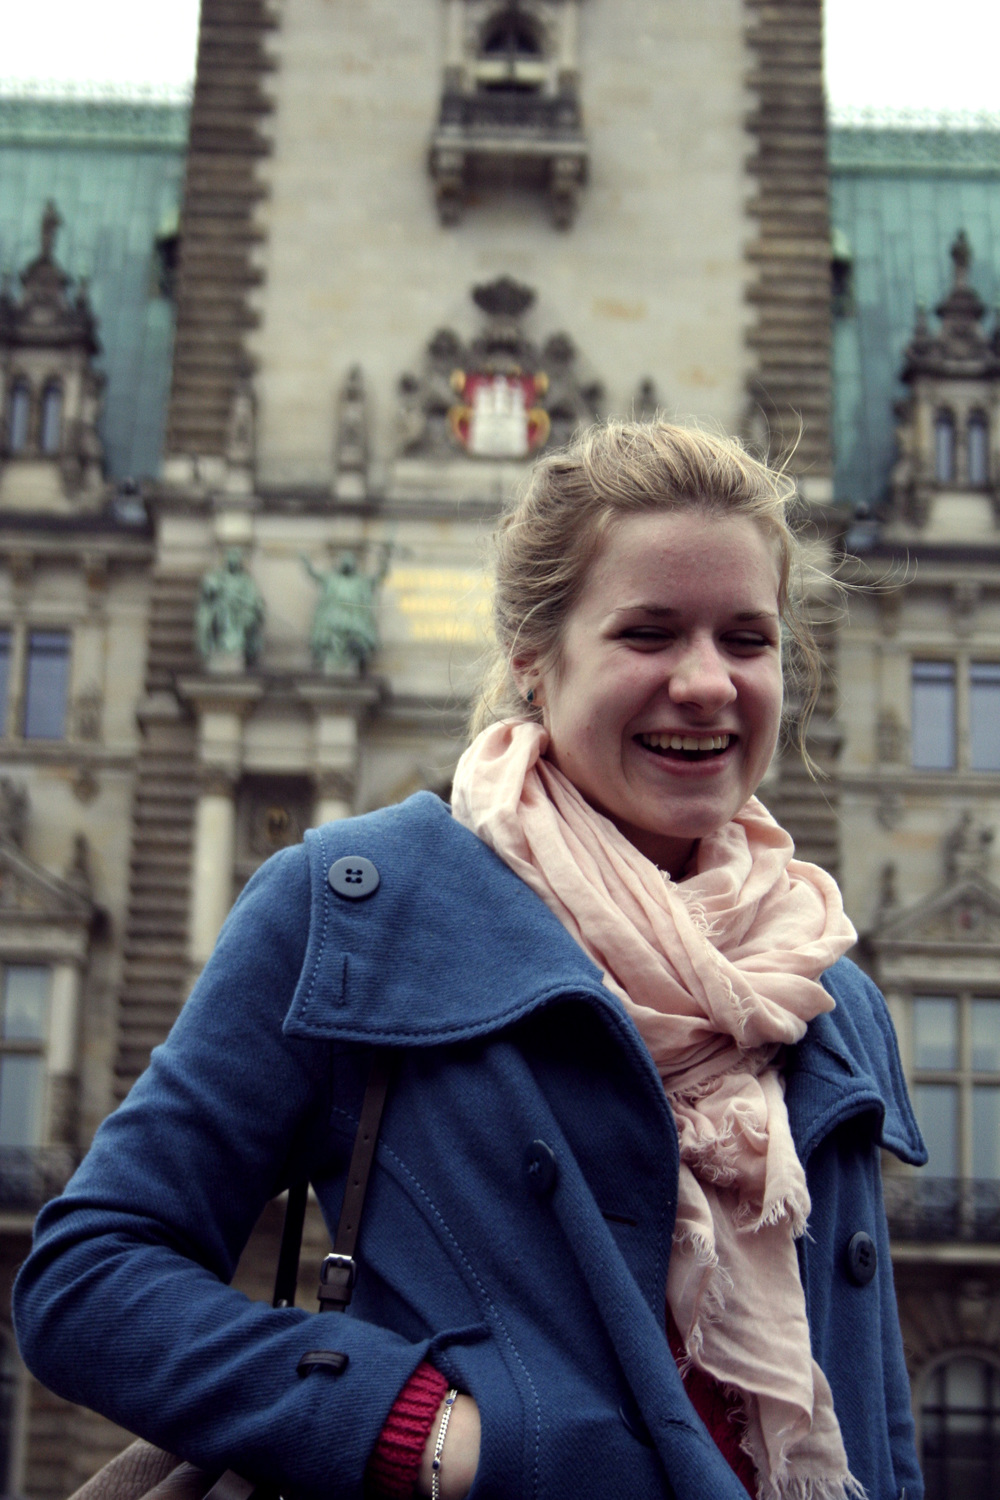 Tabea in front of the Rathaus